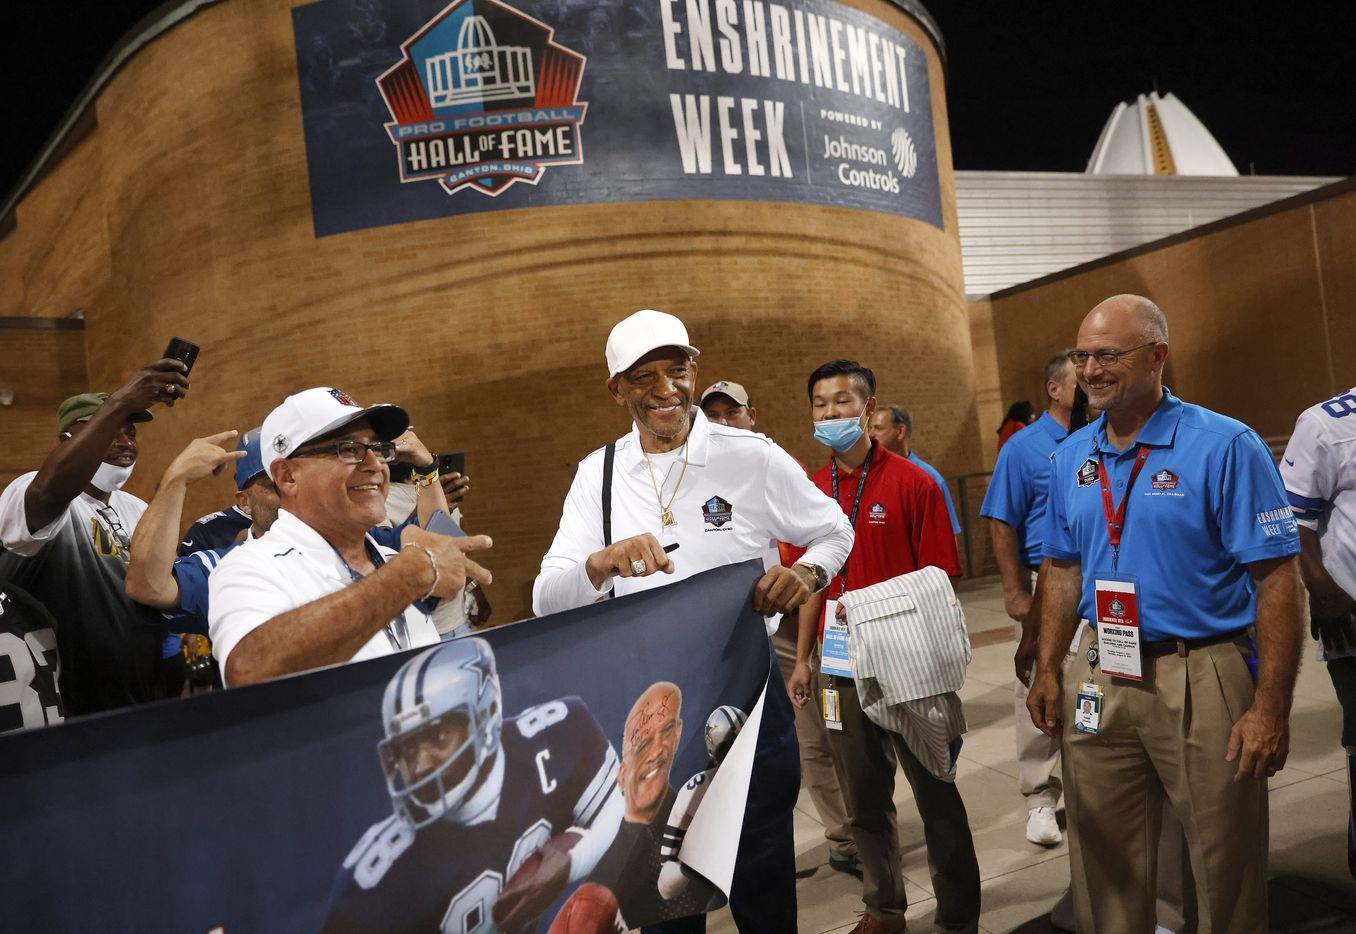 Pro Football Hall of Fame inductee Drew Pearson of the Dallas Cowboys (center) poses for photos with fans after signing a picture during a preseason game between the Cowboys and Pittsburgh Steelers at Tom Benson Hall of Fame Stadium in Canton, Ohio, Thursday, August 5, 2021. (Tom Fox/The Dallas Morning News)